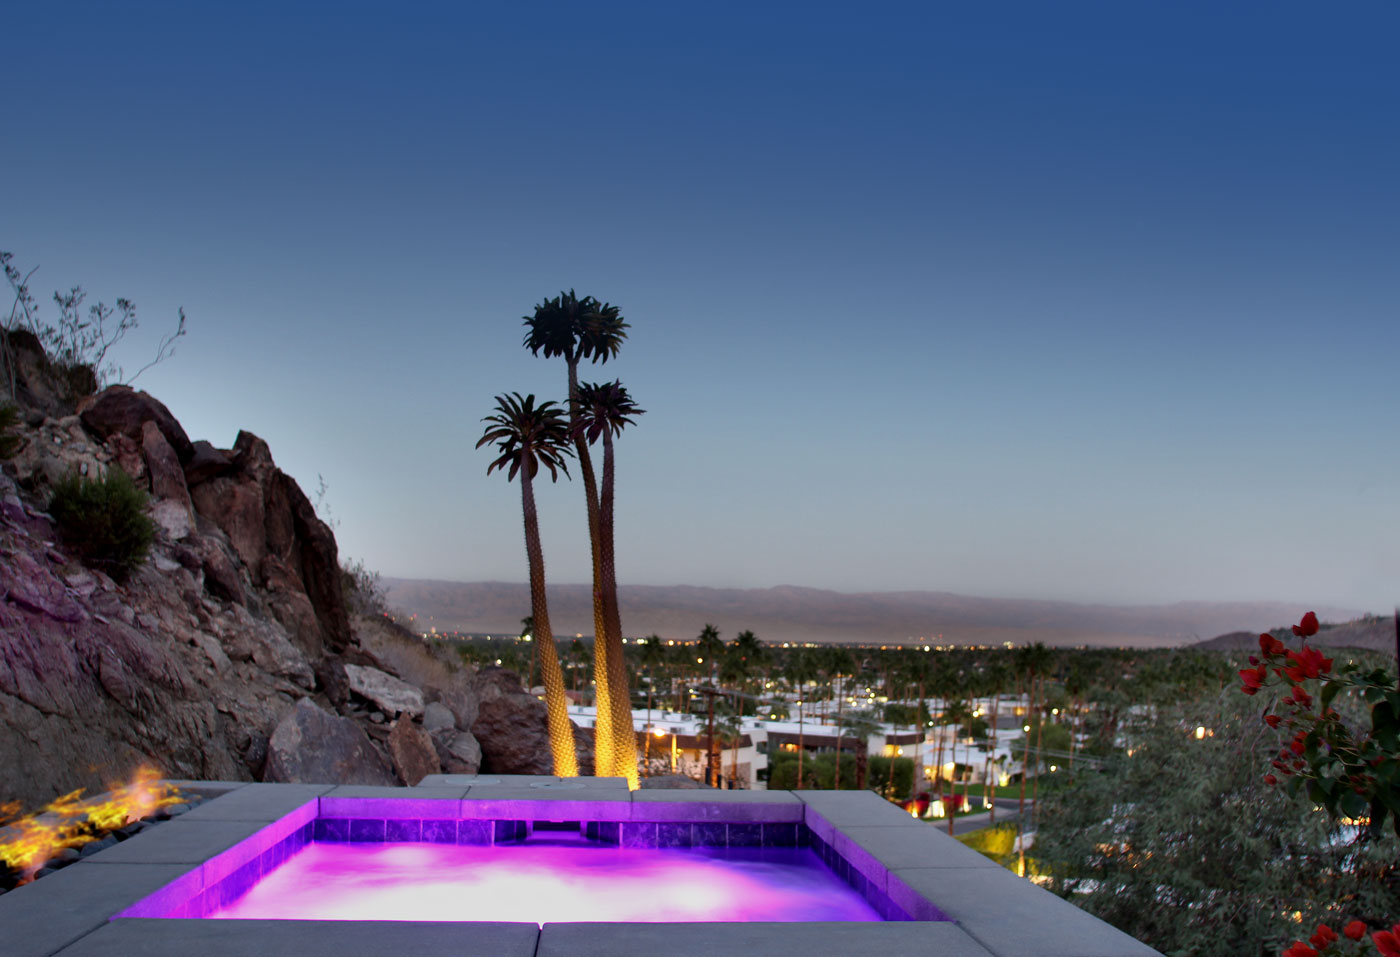 96 Jacuzzi+lights+with+firepit+and+unobstructed+views+of+desert+valley